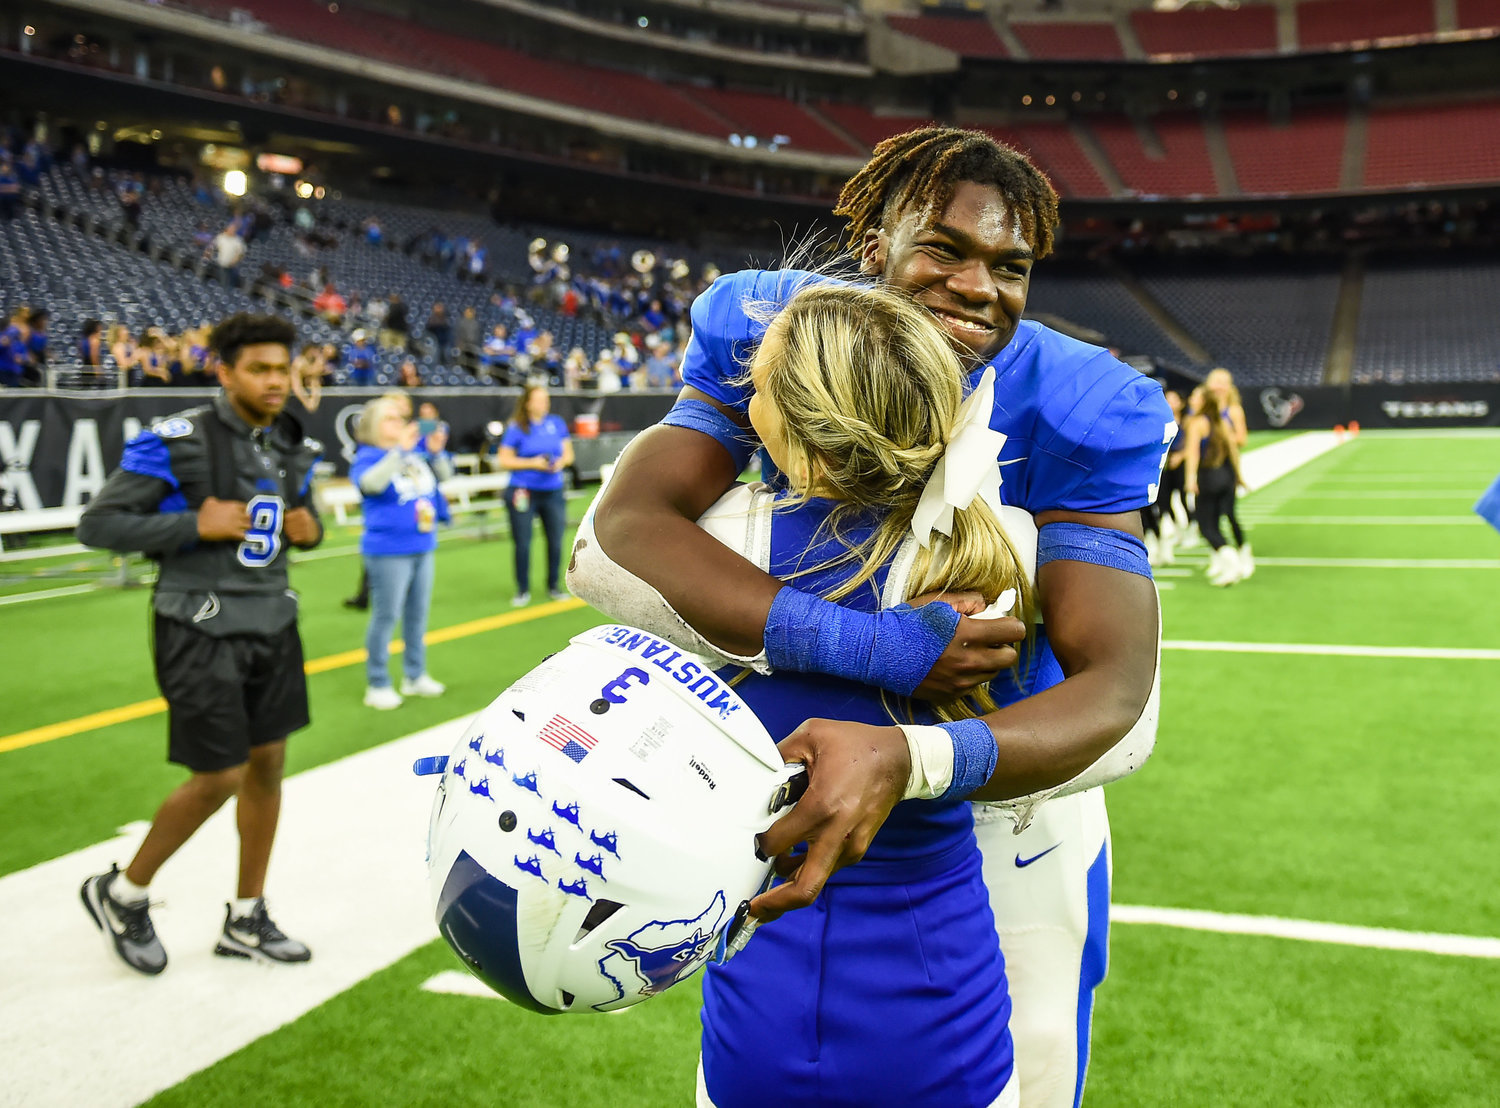 Houston, Tx. Dec 7, 2019: Taylor's Cj Tolbert (3) celebrates Taylors win with a cheerleader during the Regional Finals playoff game between Katy Taylor and Cy-Creek at NRG Stadium in Houston. (Photo by Mark Goodman / Katy Times)